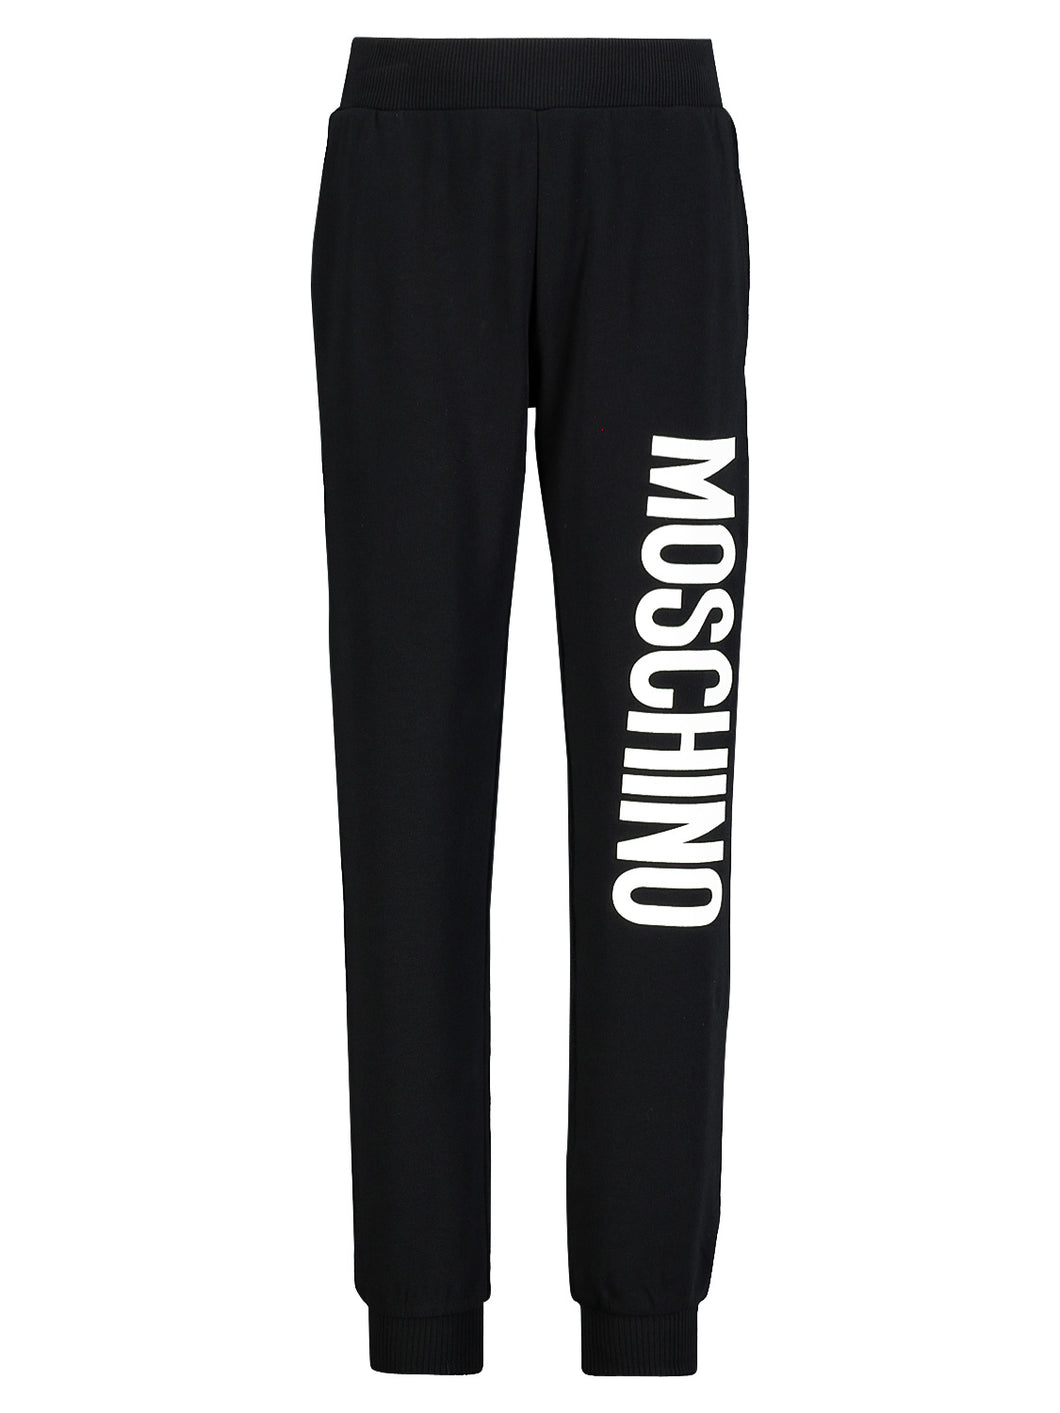 Pantalone MOSCHINO Nero - Junior & Co.it